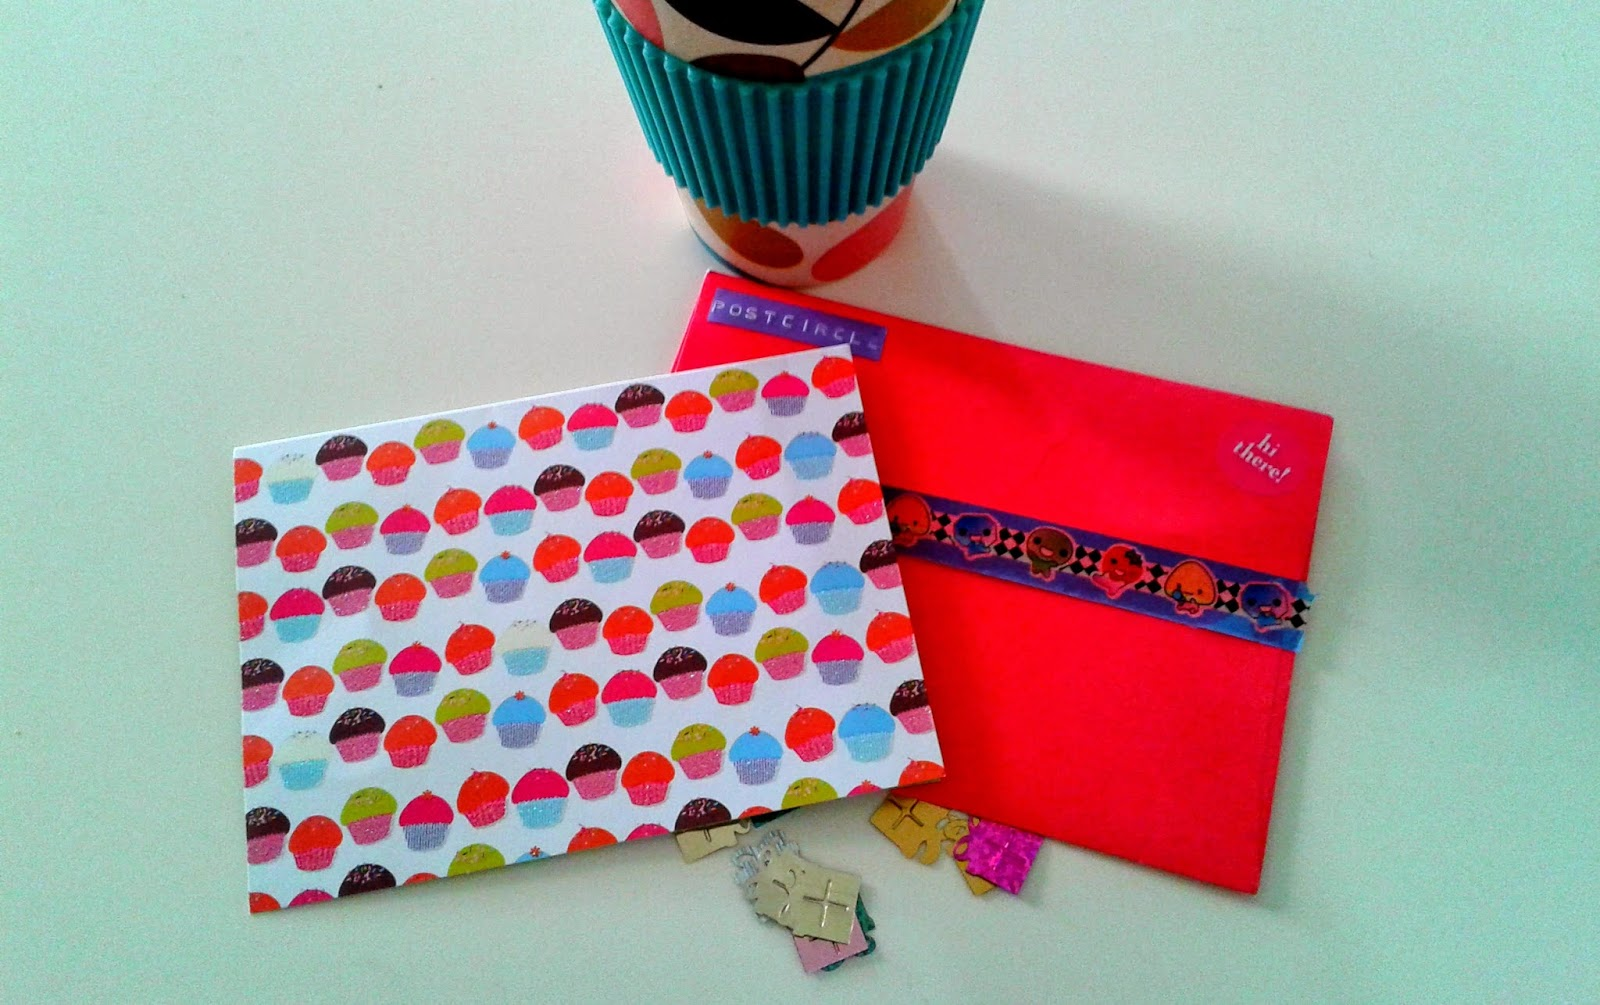 Project 365 day 81 - Happy mail #postcircle // 76sunflowers